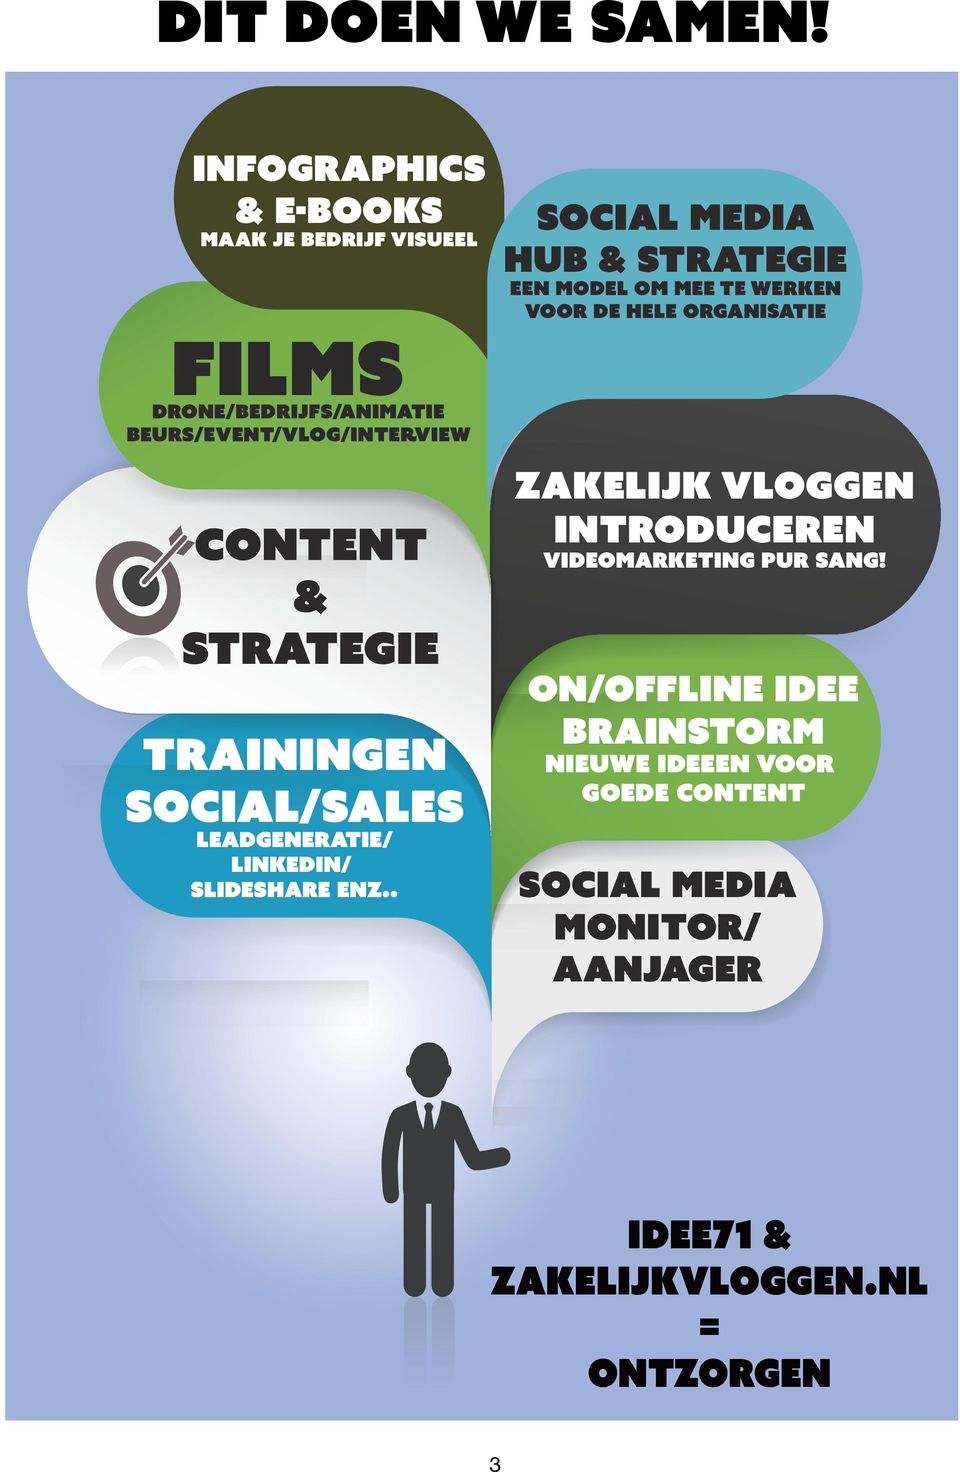 strategie Trainingen social/sales leadgeneratie/ linkedin/ slideshare enz.